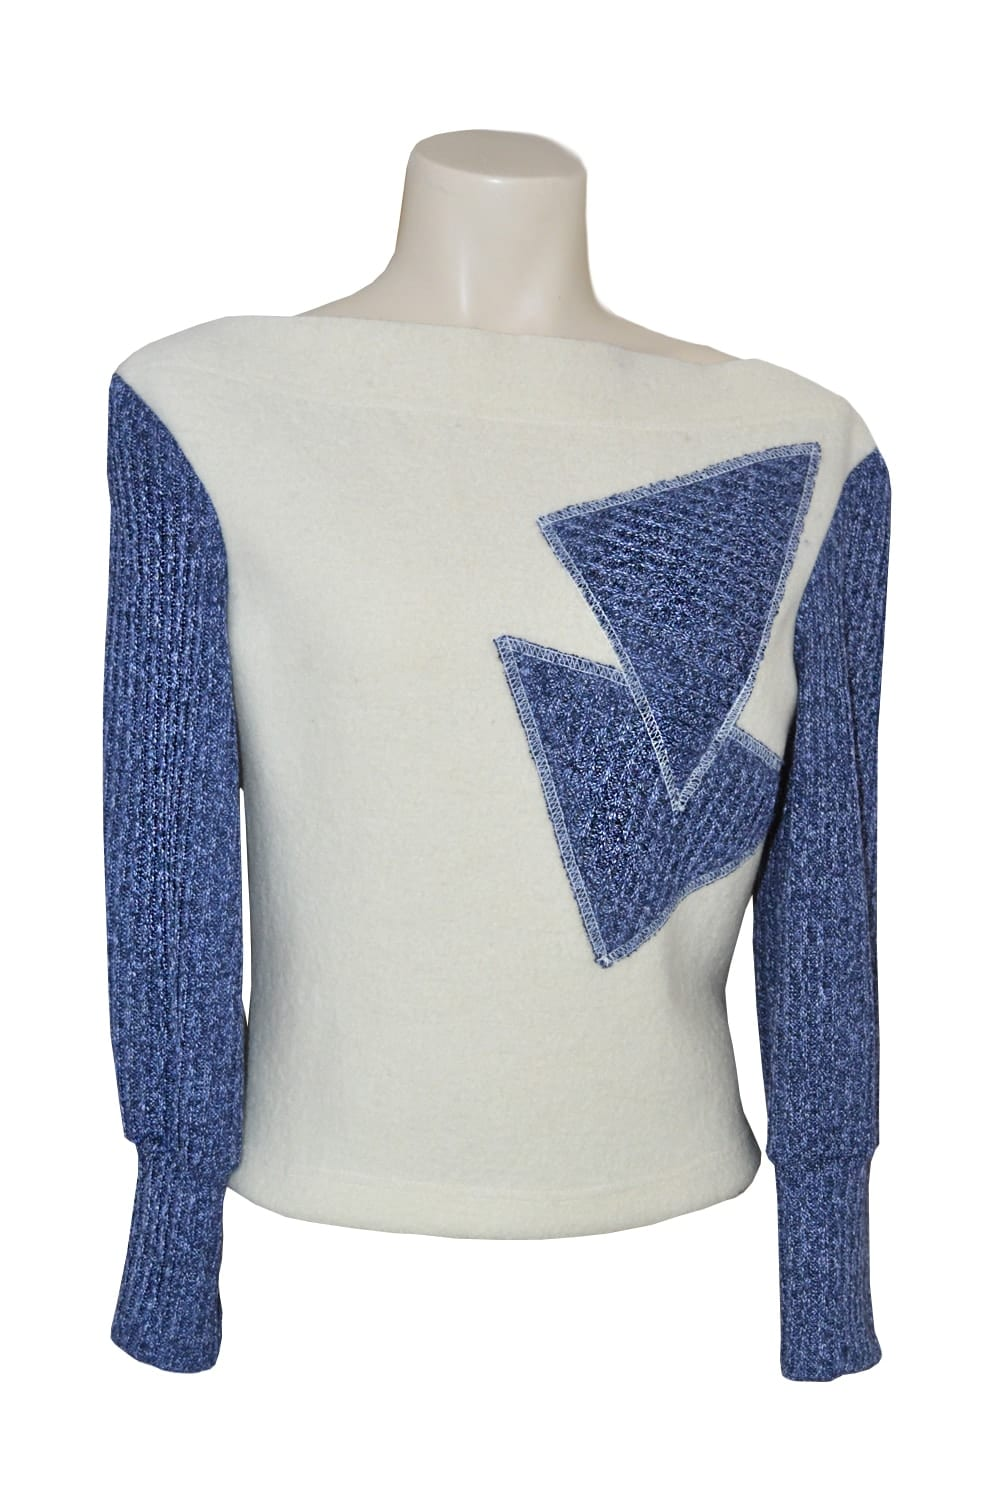 Winter wool sweater. Sleeves and patterns in heather blue denim heather.